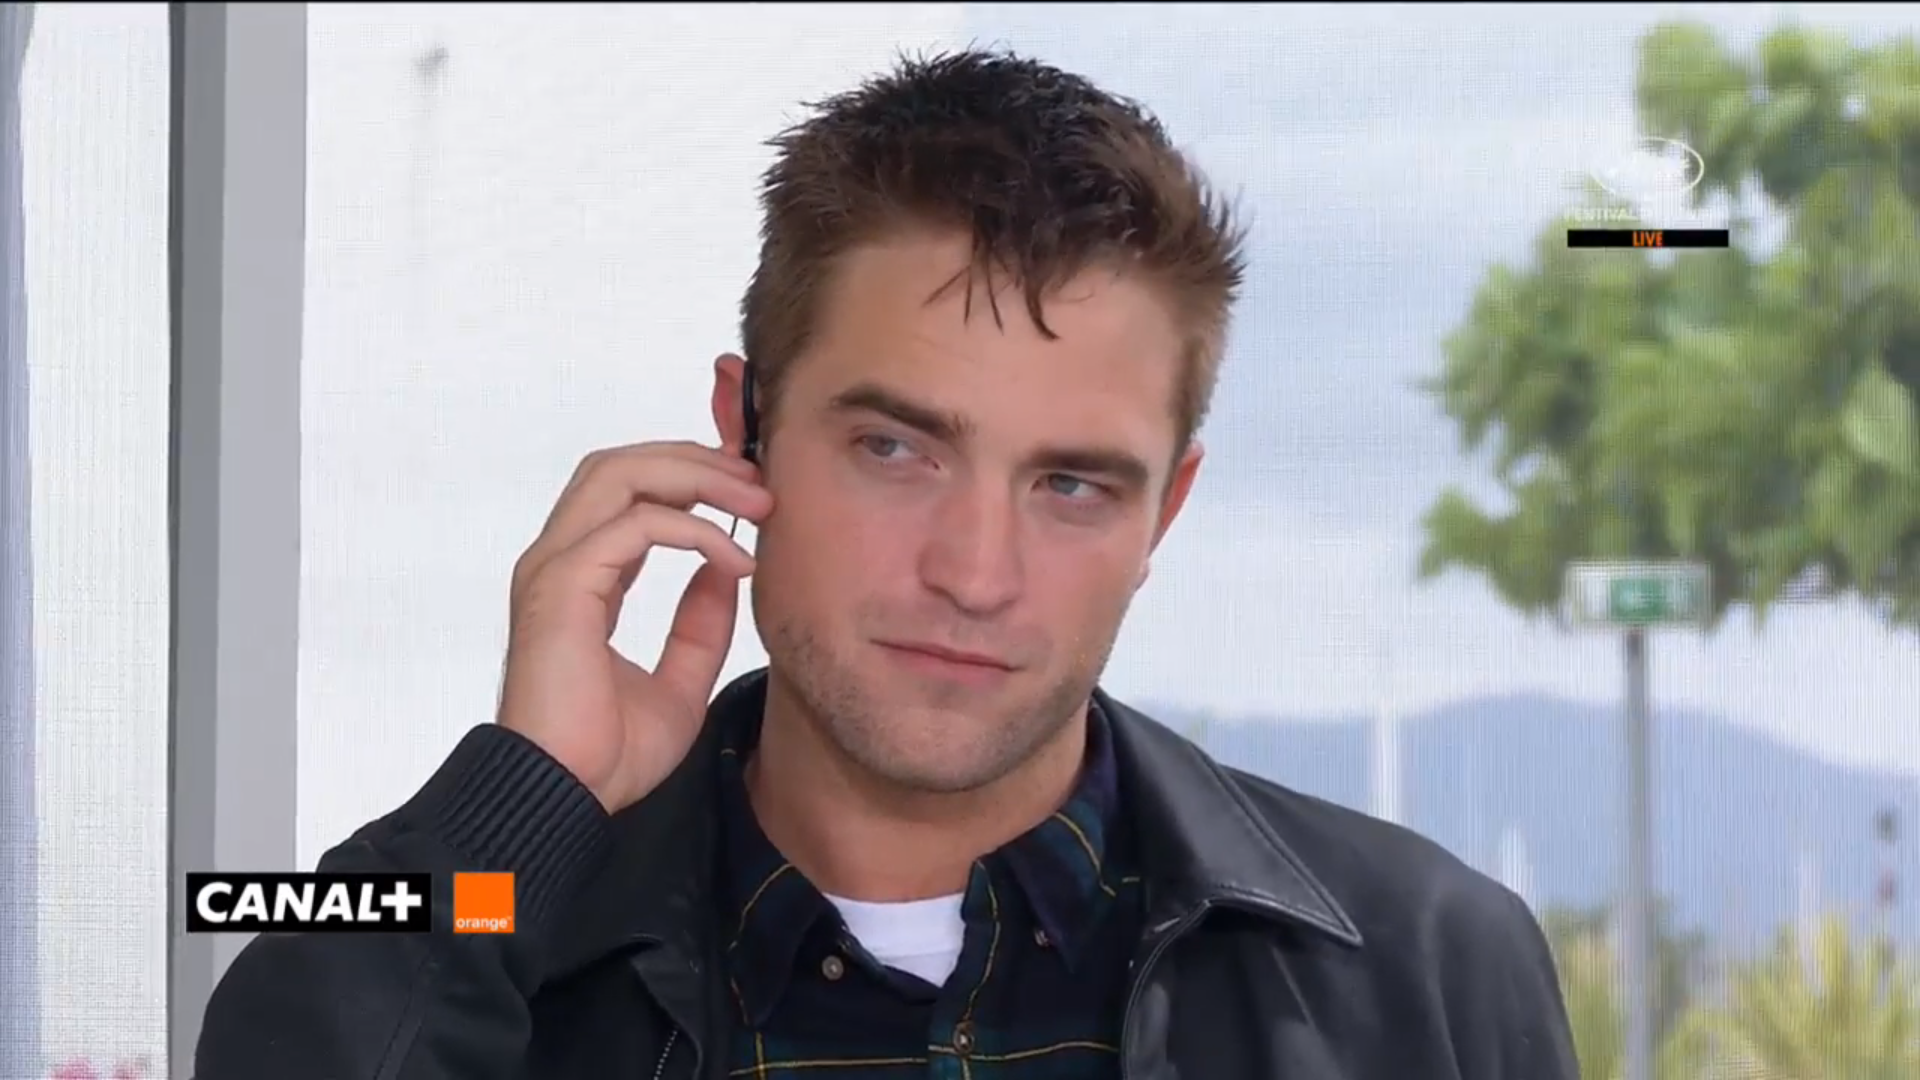 maps to the stars official cannes film festival interview video maps to the stars official cannes film festival interview video screencaps of robert pattinson the cast crew